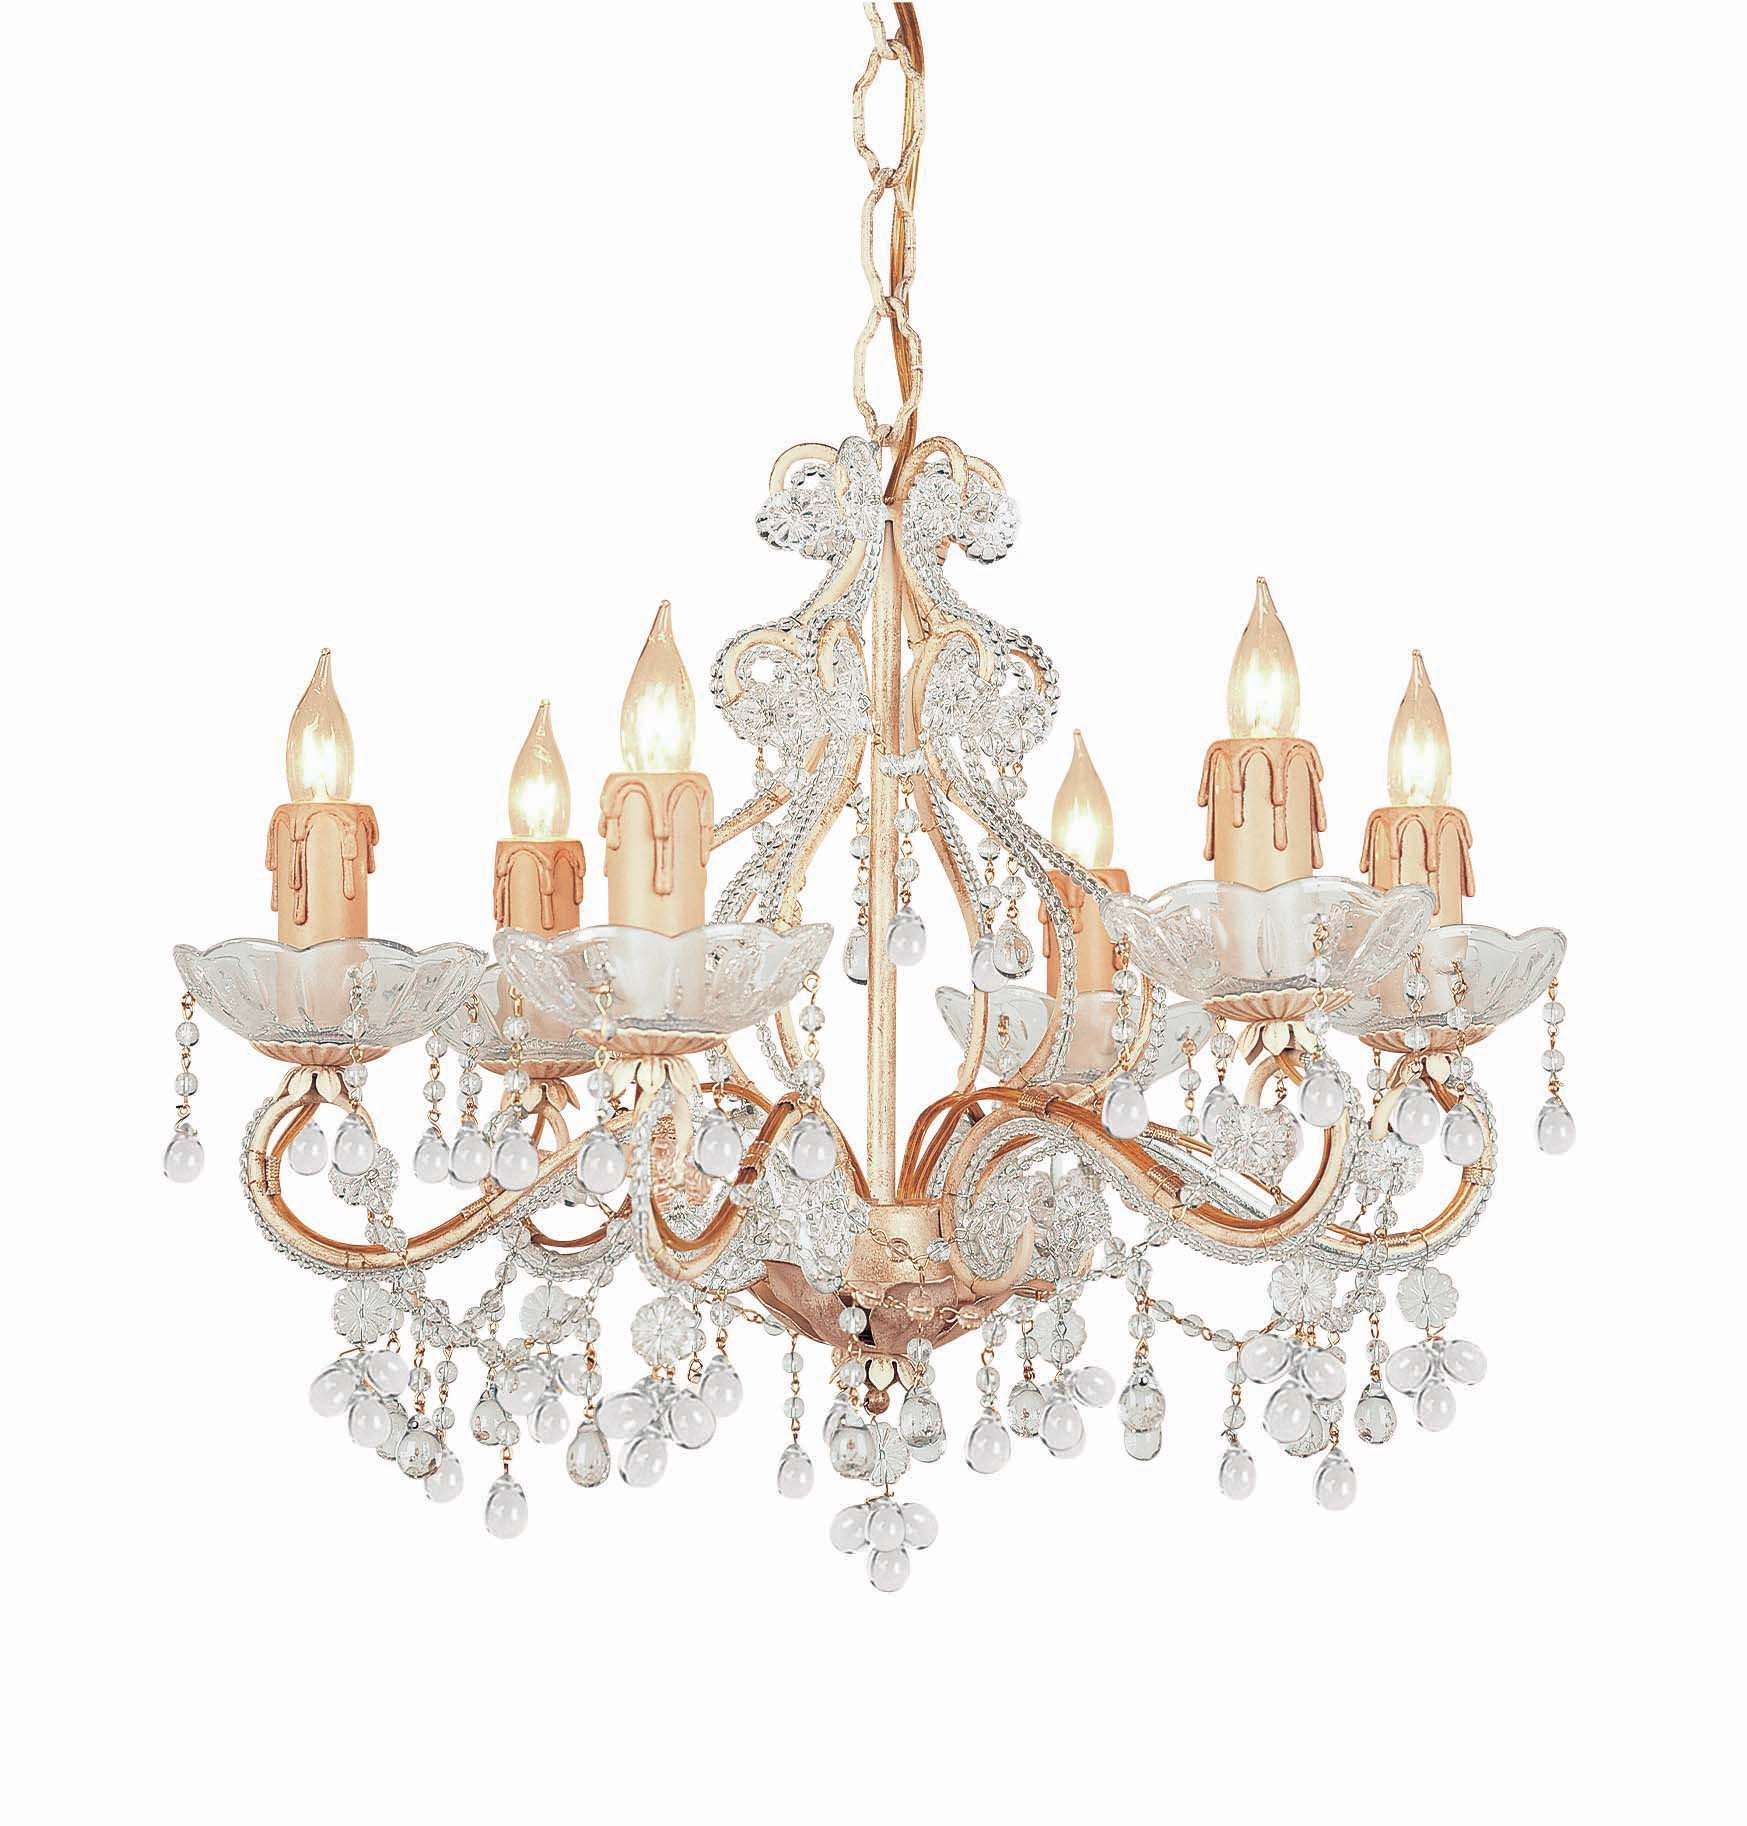 Crystorama 4507 Cm Clear Paris Flea Market Chandelier Ctr